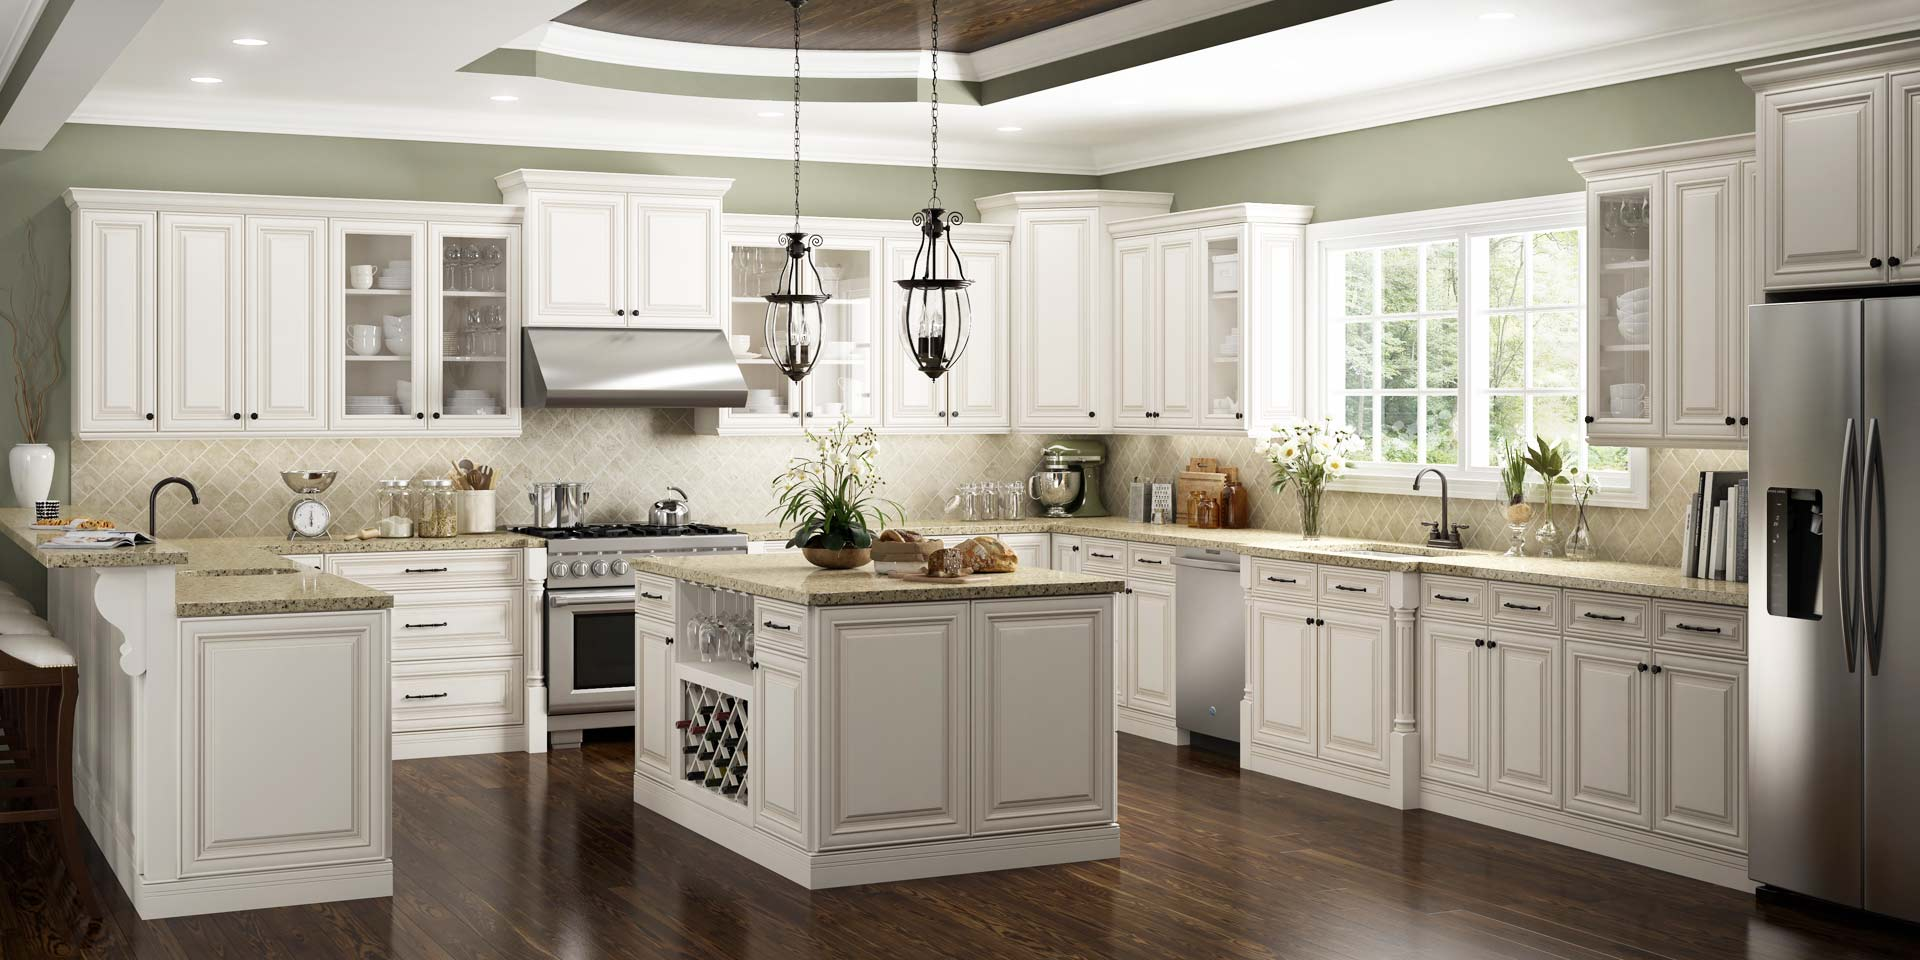 Kitchen design alabama search alabama kitchen designers for Kitchen design categories